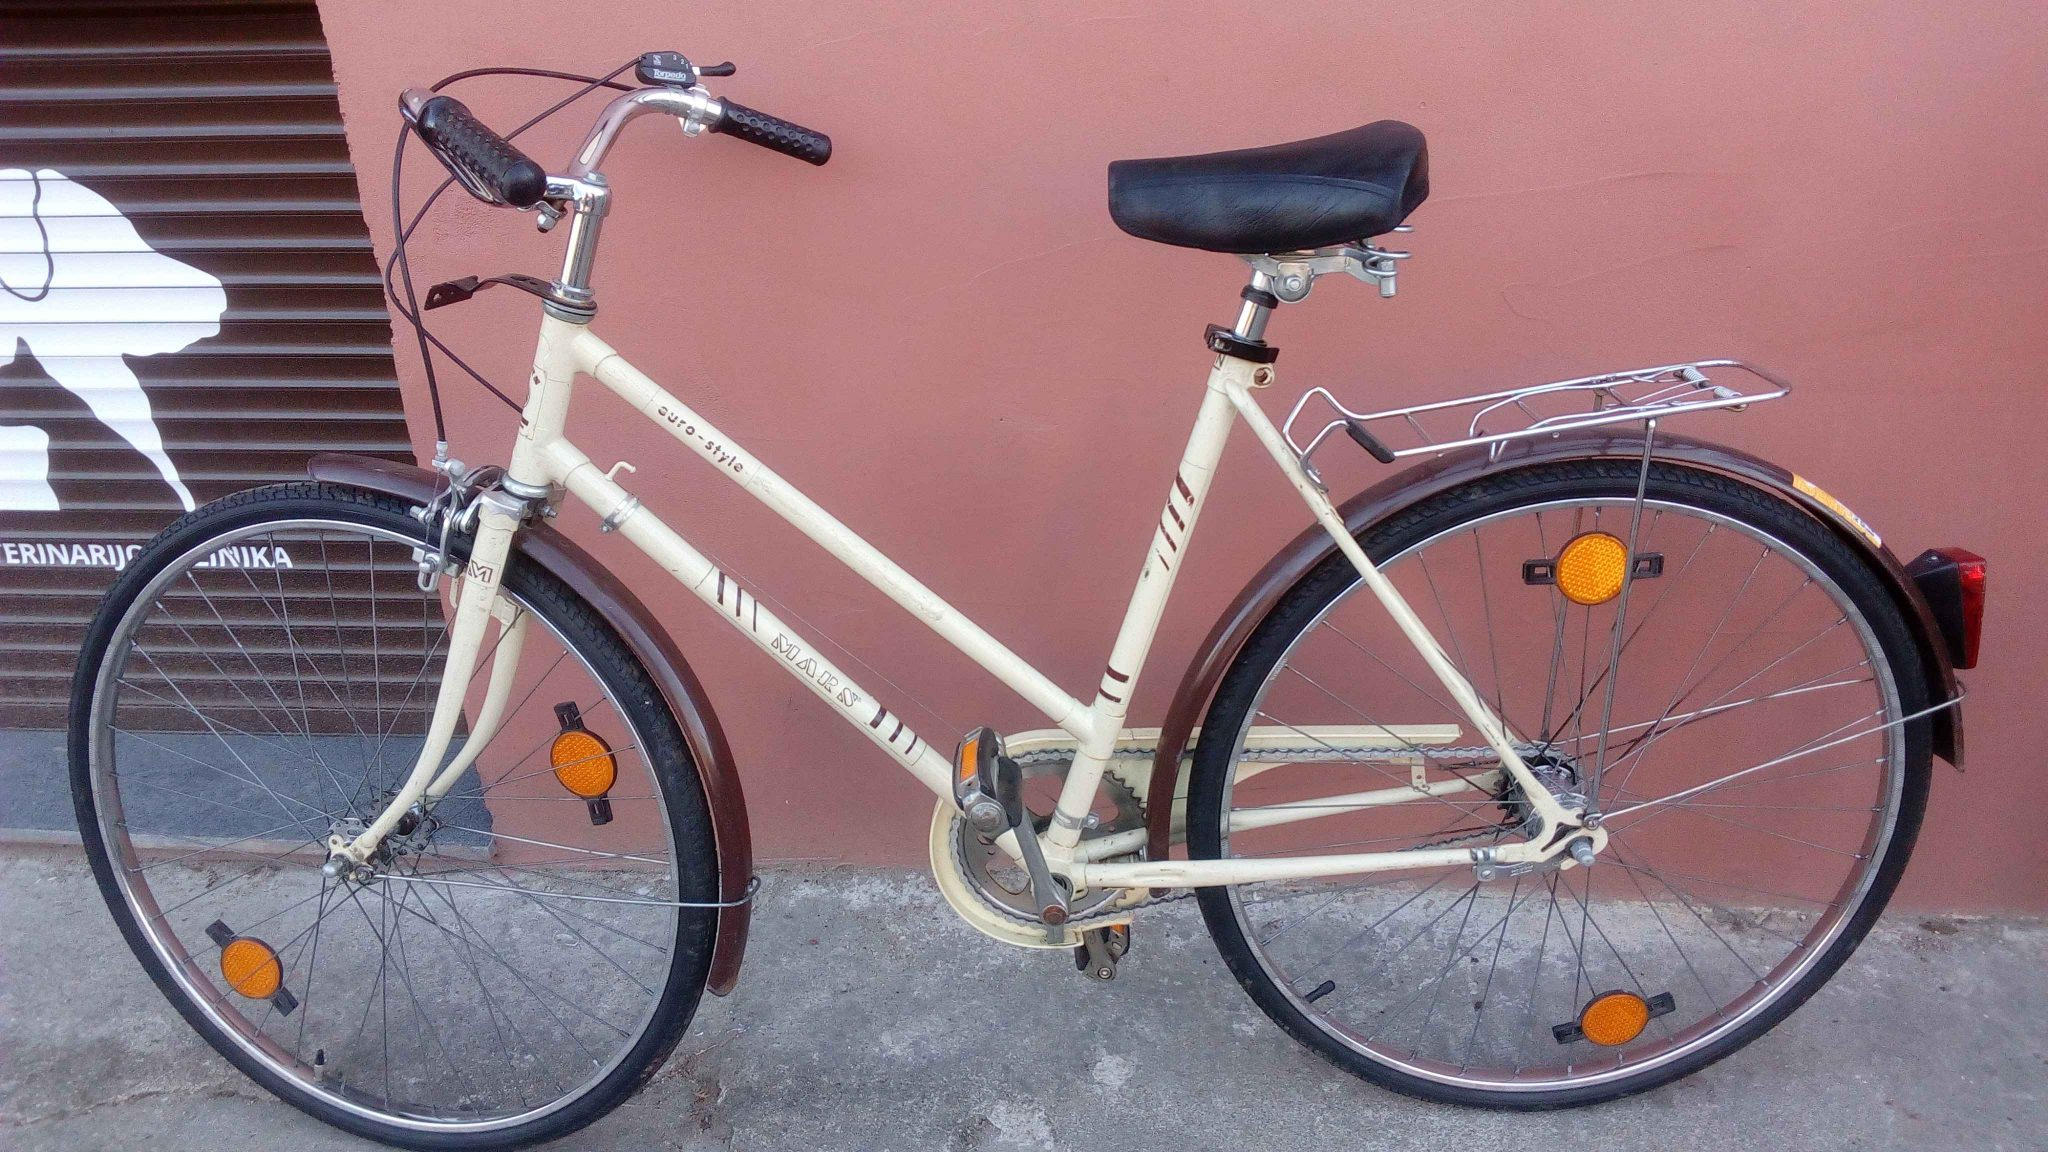 Used bicycles (and other items) for sale